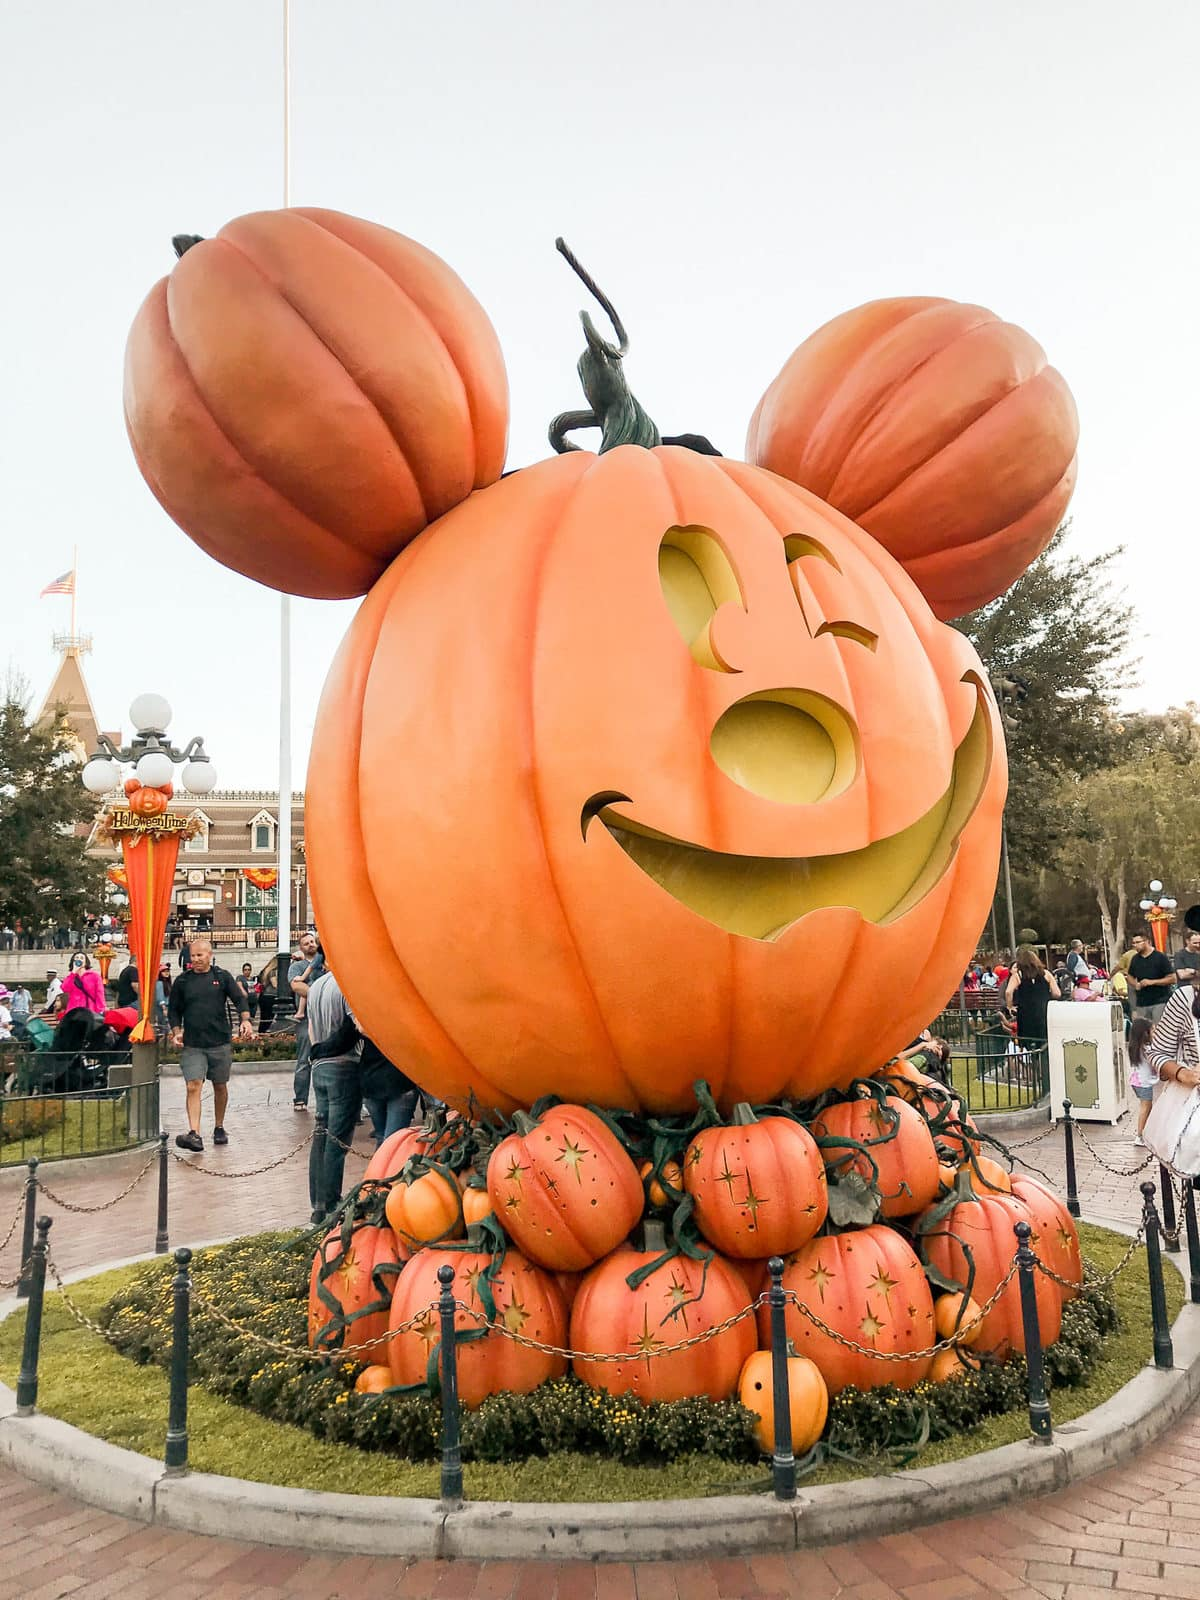 when does disneyland decorate for halloween?